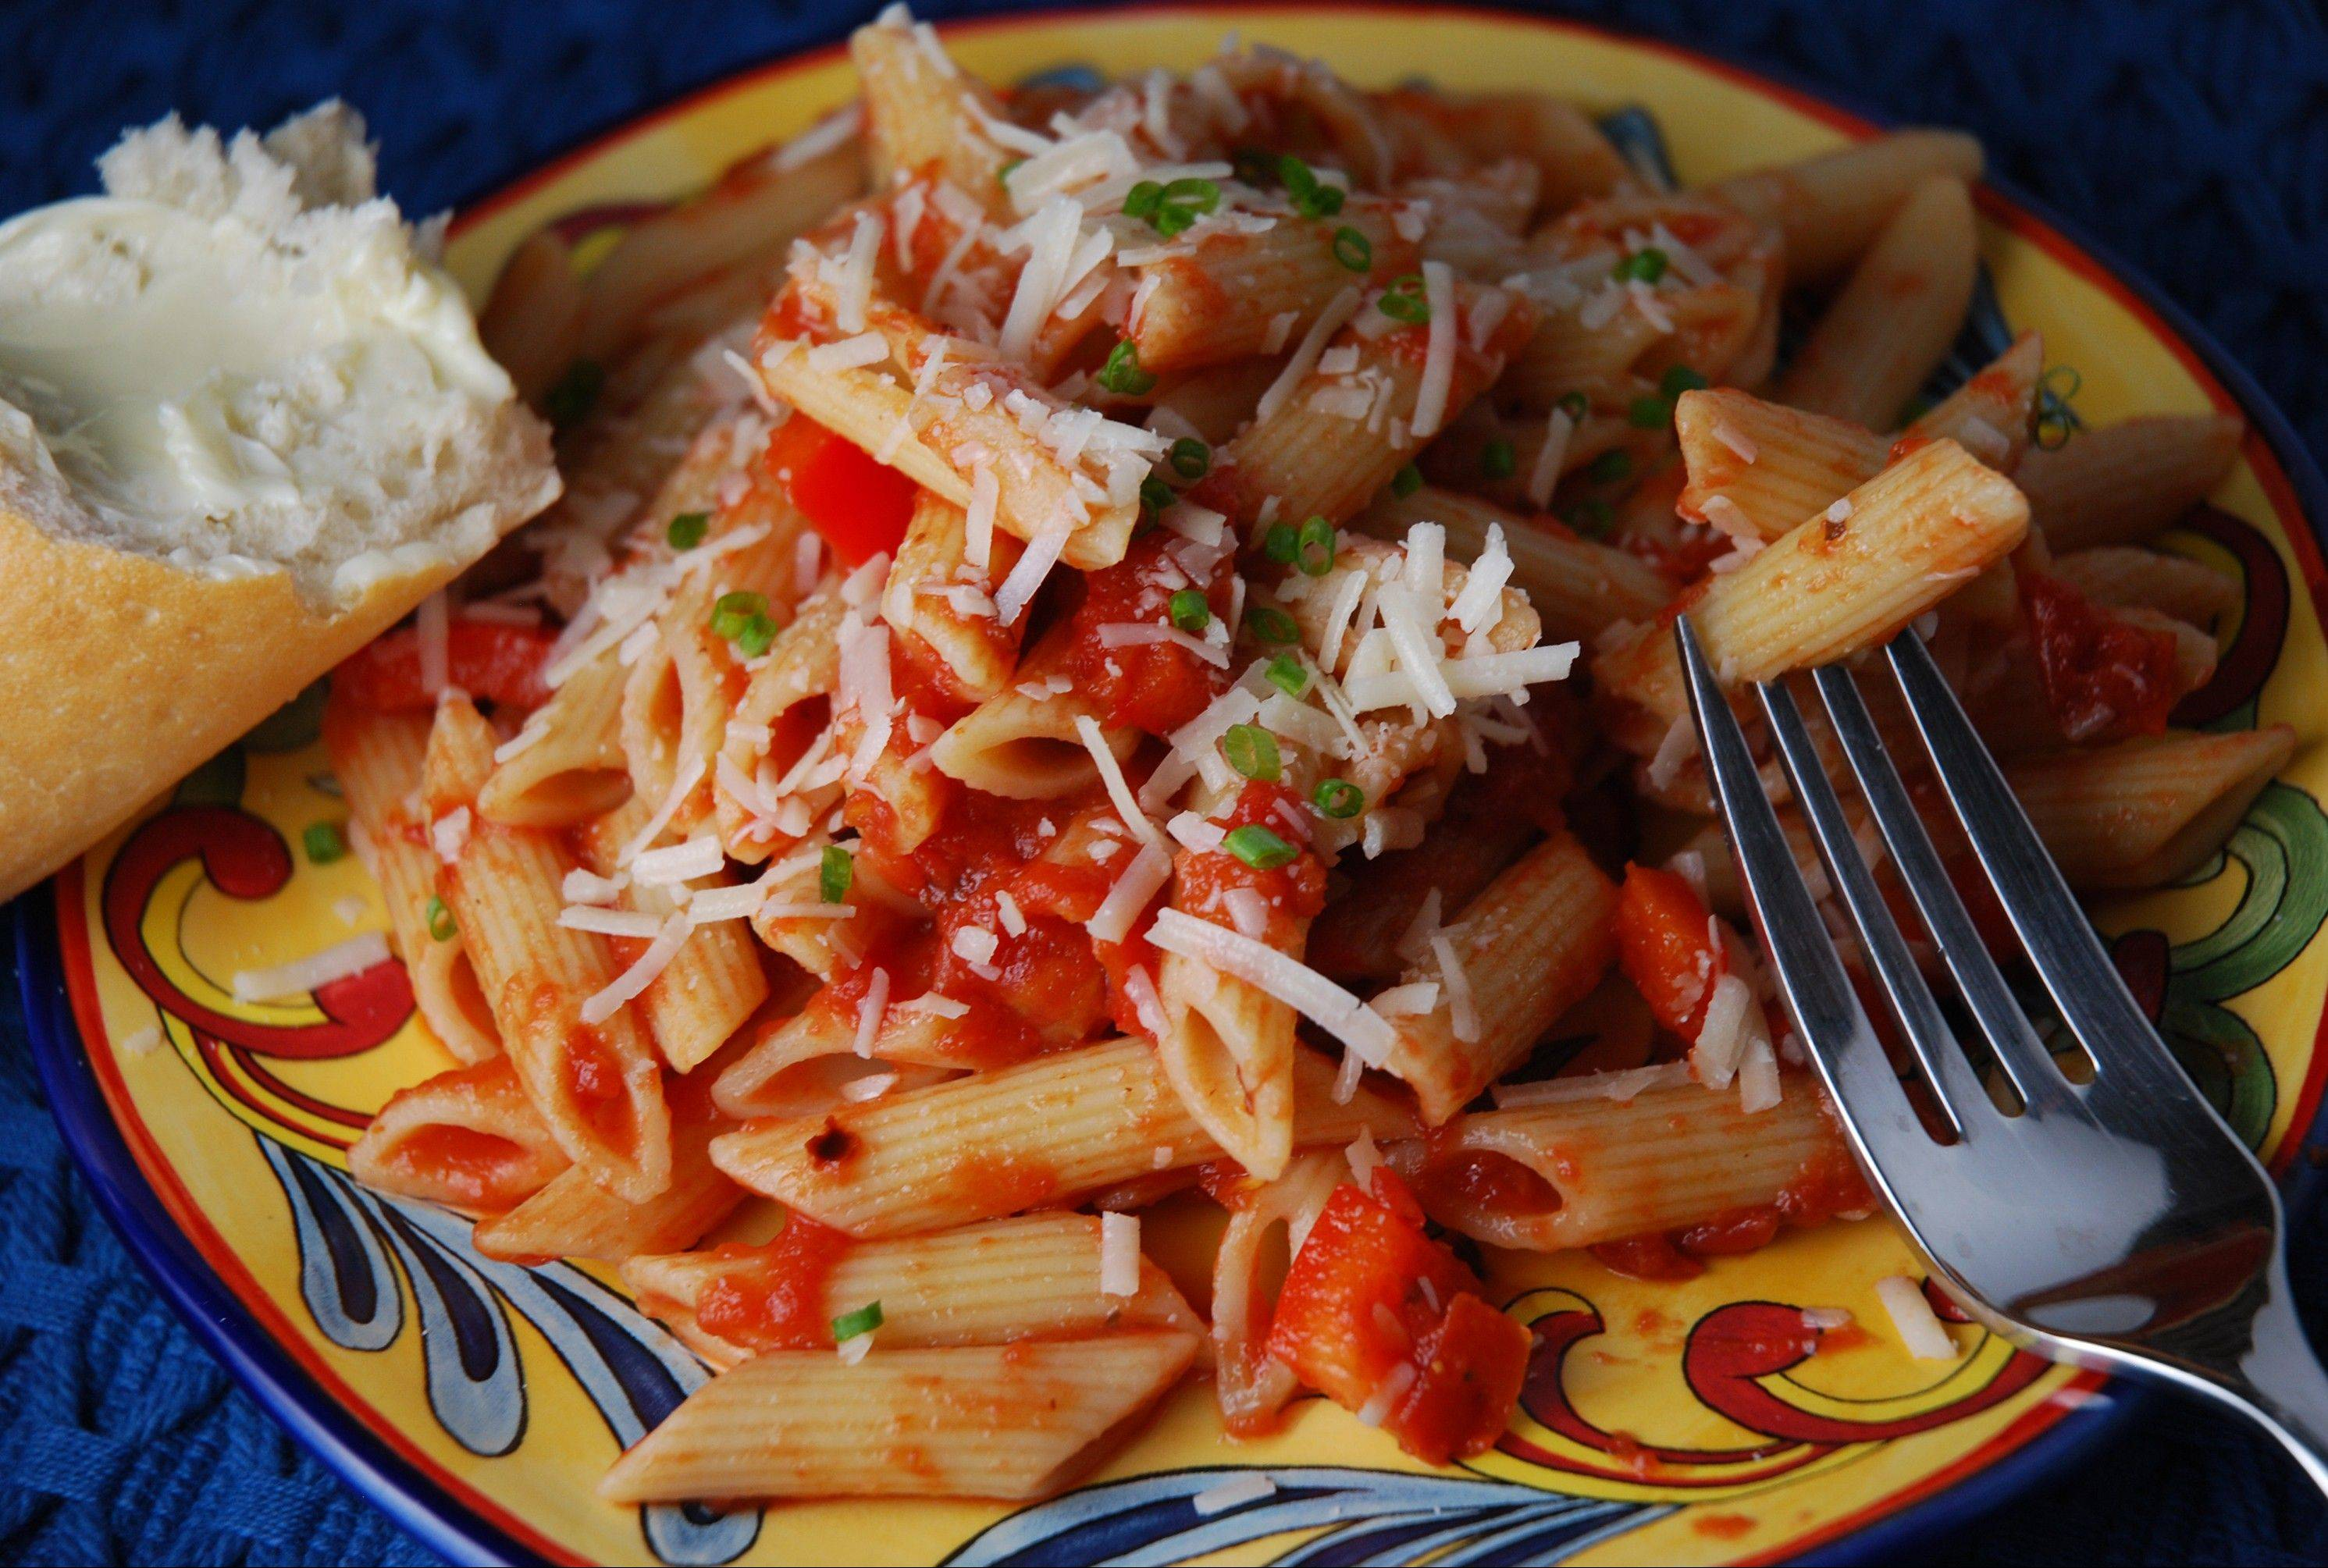 Classic Italian Pasta sauce comes together in a mere 20 minutes. The recipe makes enough for dinner tonight with plenty leftover.